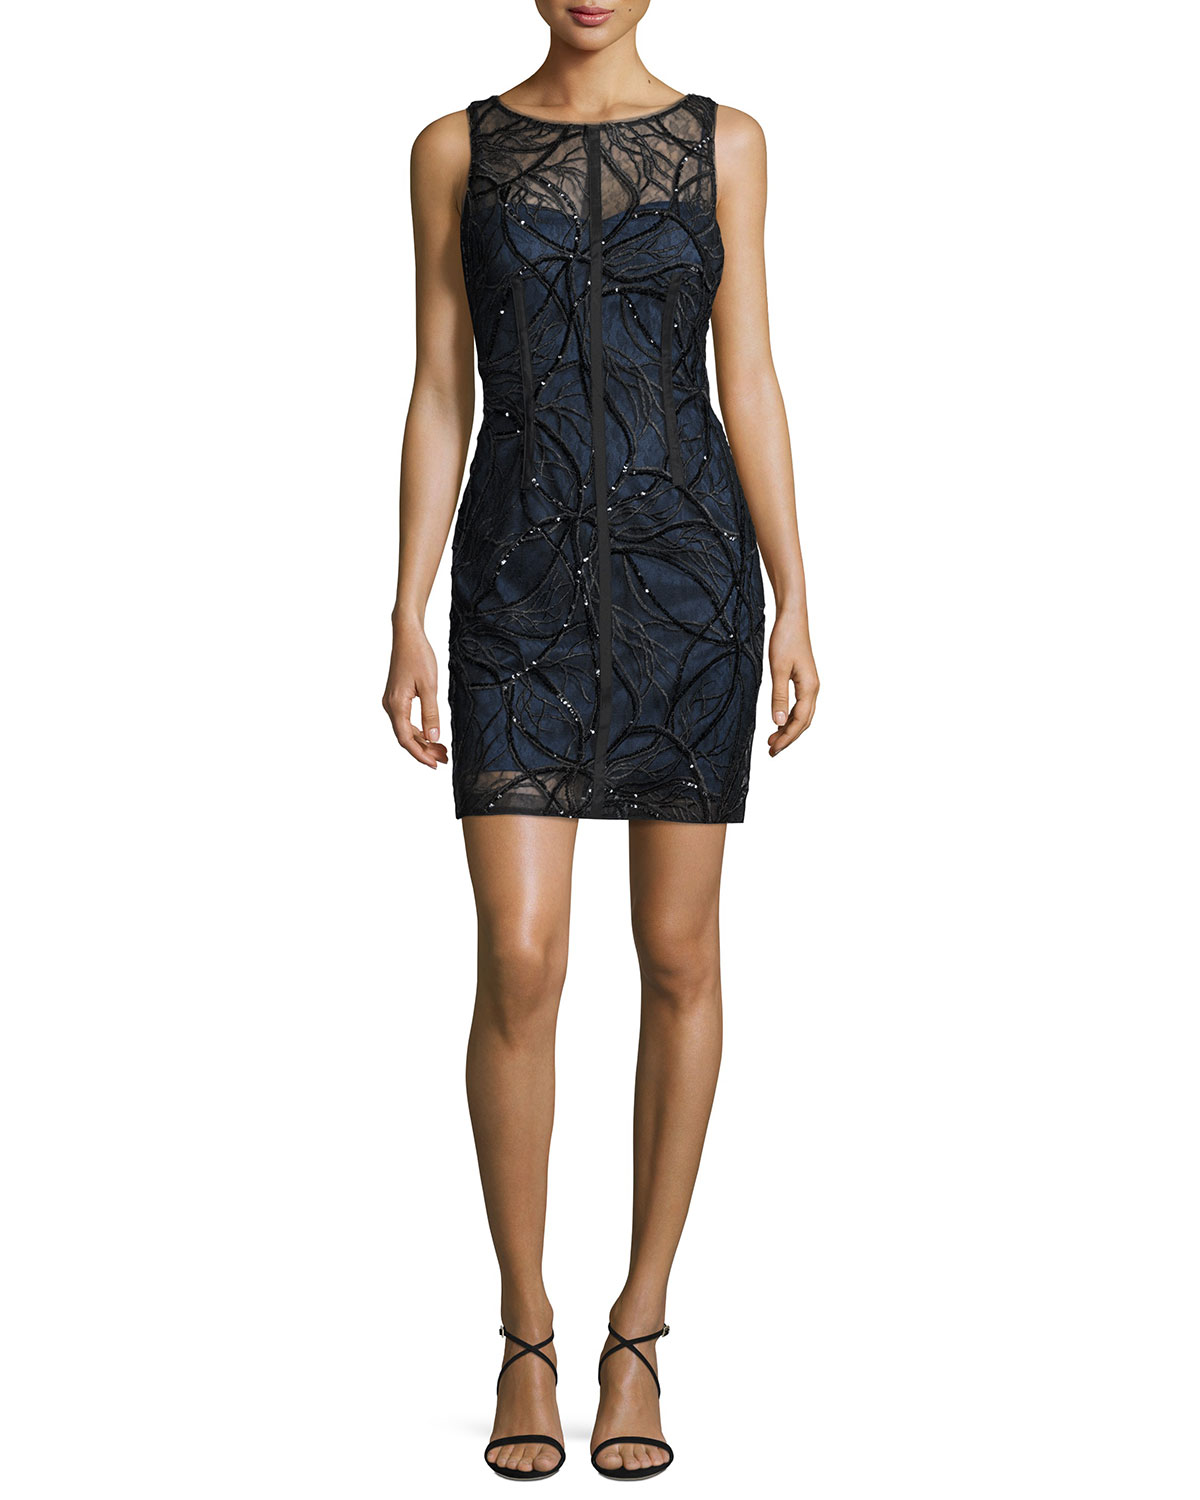 Sleeveless Sequined Lace Cocktail Dress, Black/Steel Blue